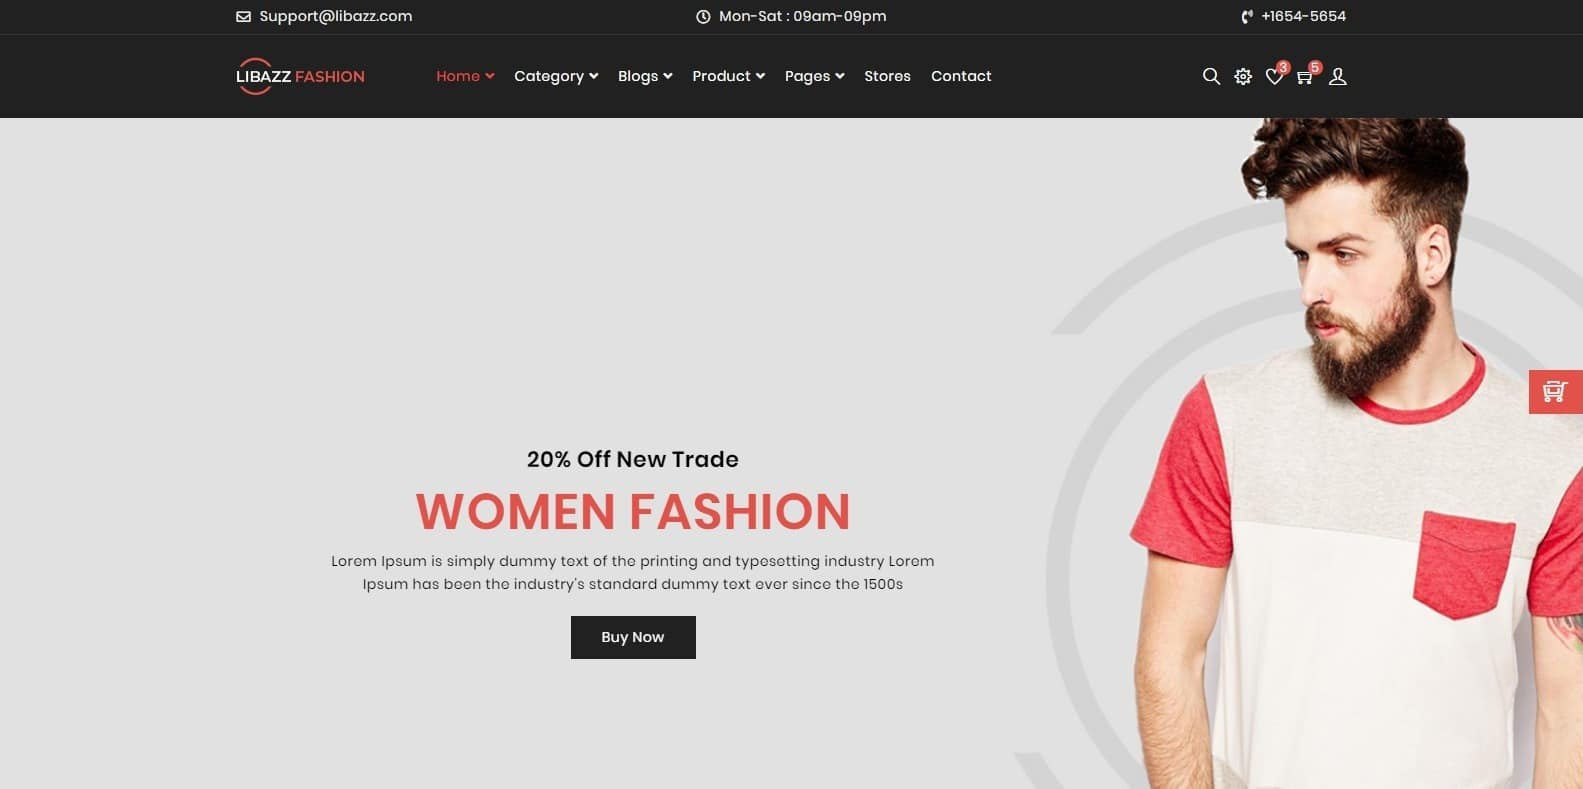 libazz-fashion-website-template